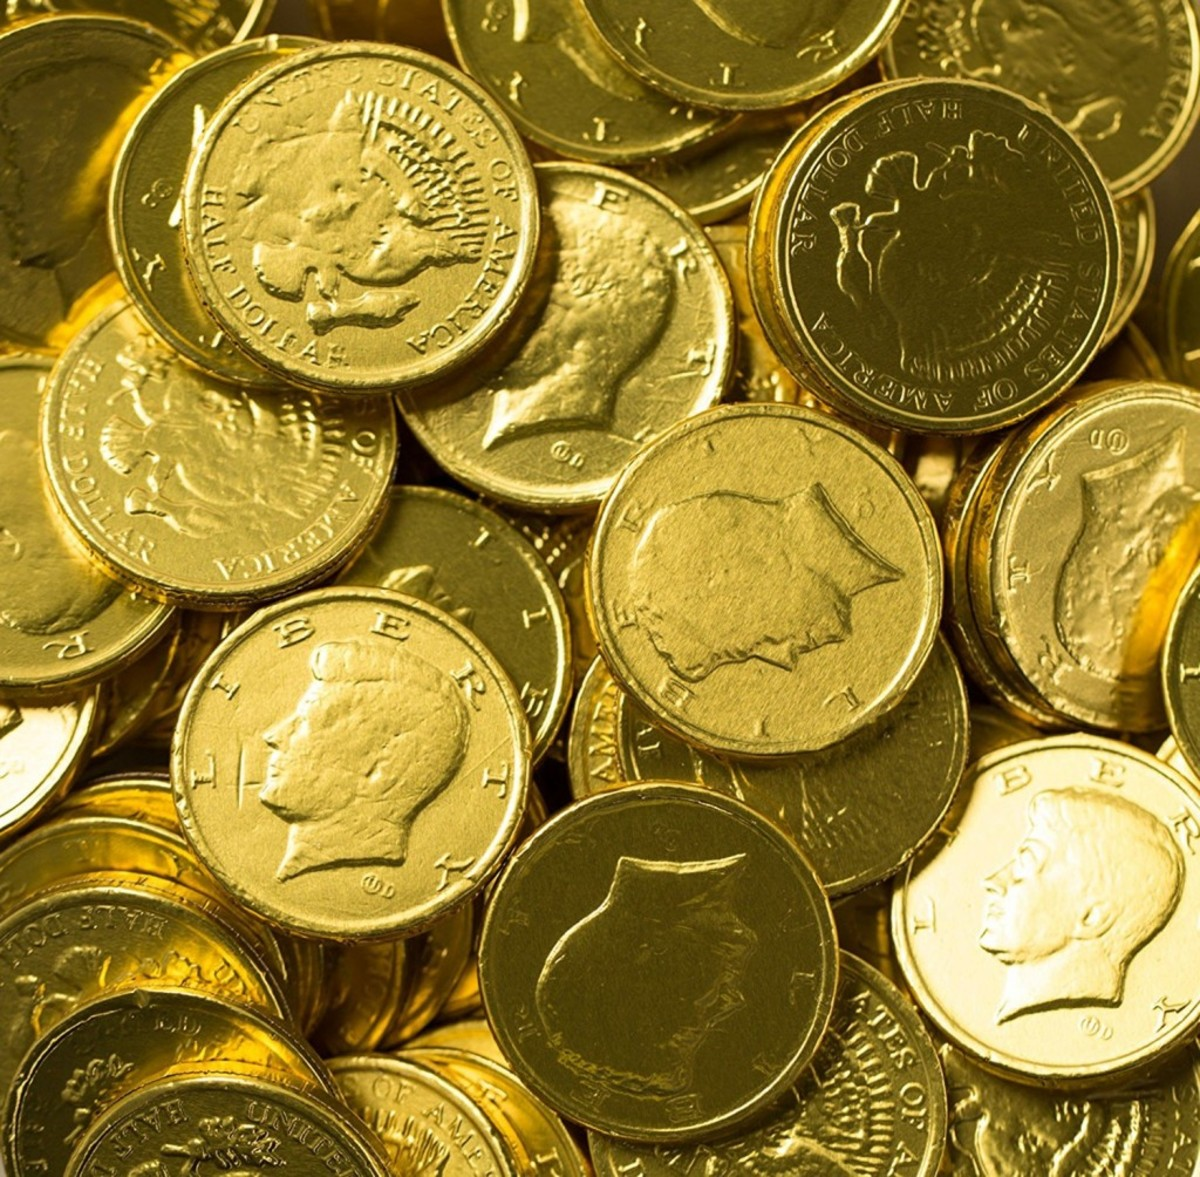 Here are the chocolate coins that have worked out well for me to give to large groups.